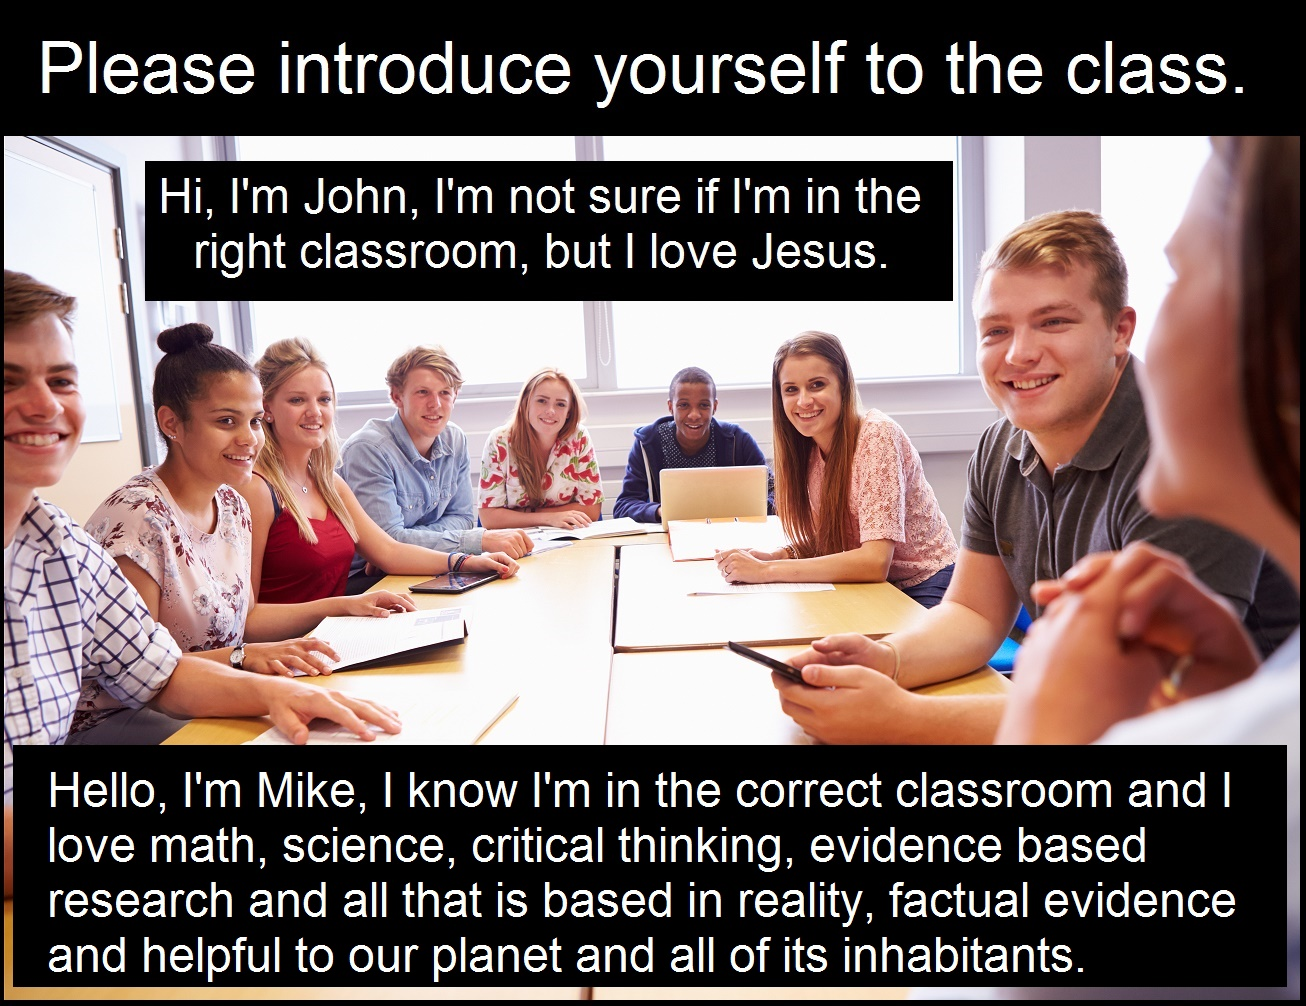 Hello, I'm Mike, I know I'm in the correct classroom and I love math, science, critical thinking, evidence based research and all that is based in reality, factual evidence and helpful to our planet and all of its inhabitants.